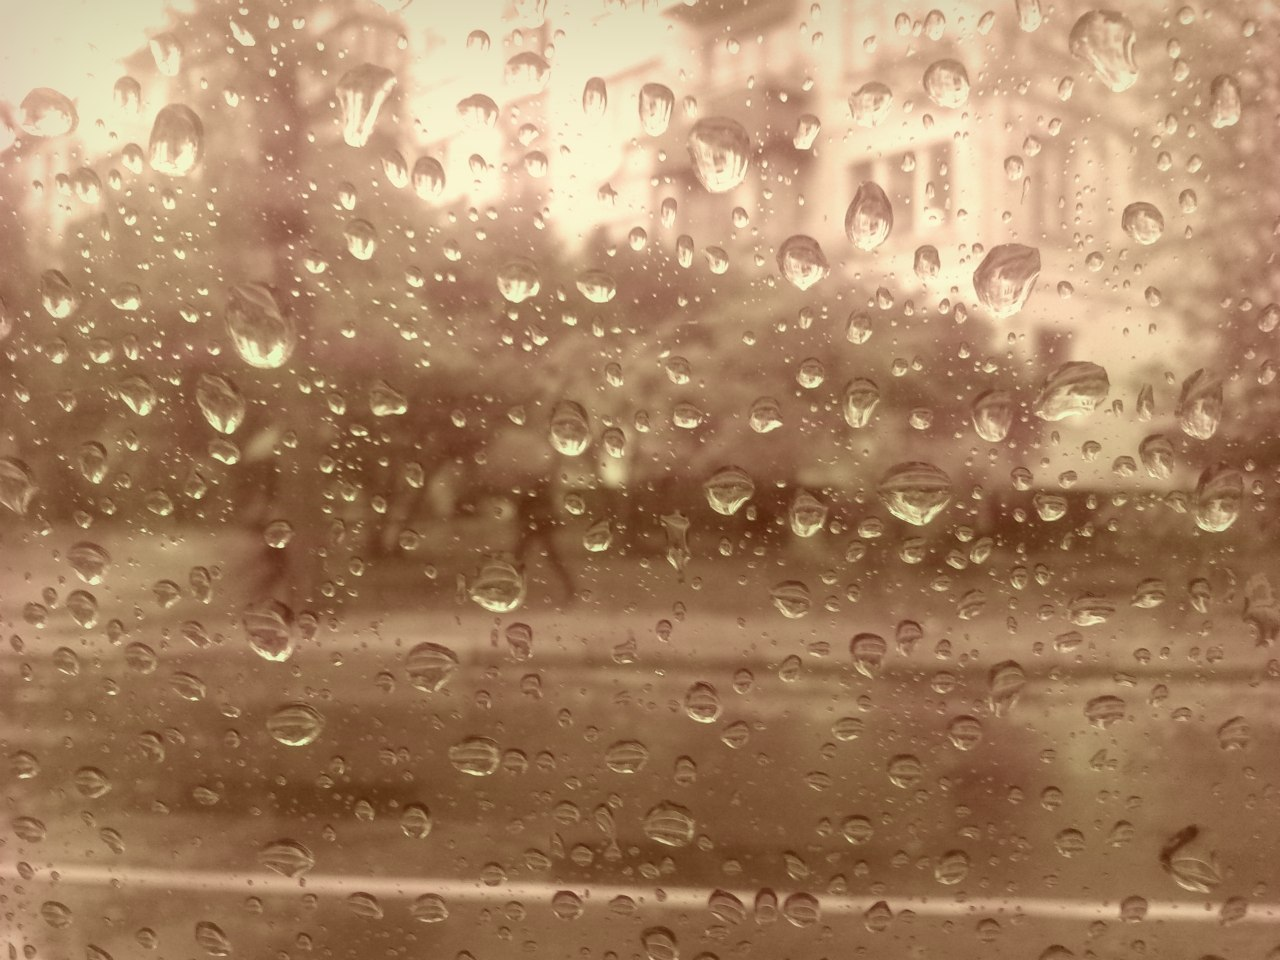 22361 download wallpaper Landscape, Rain, Streets, Drops screensavers and pictures for free